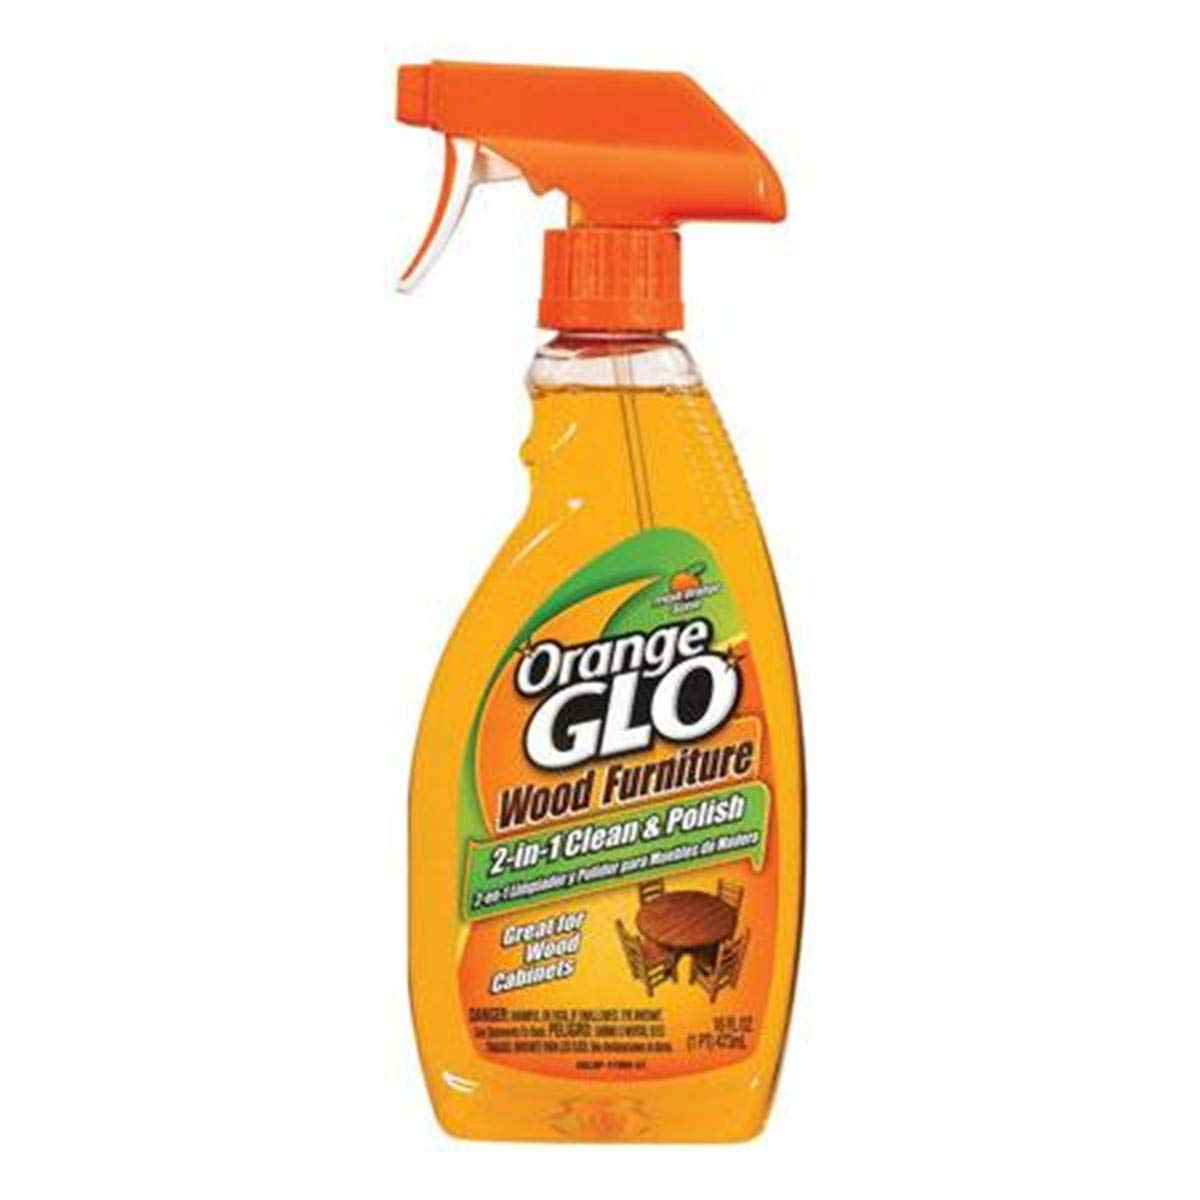 2 x Orange Glo Wood Furniture 2 in 1 cleaner and polish spray Bottles 473ml+ Free a Ultra Plush Microfiber Towel Churchdwight